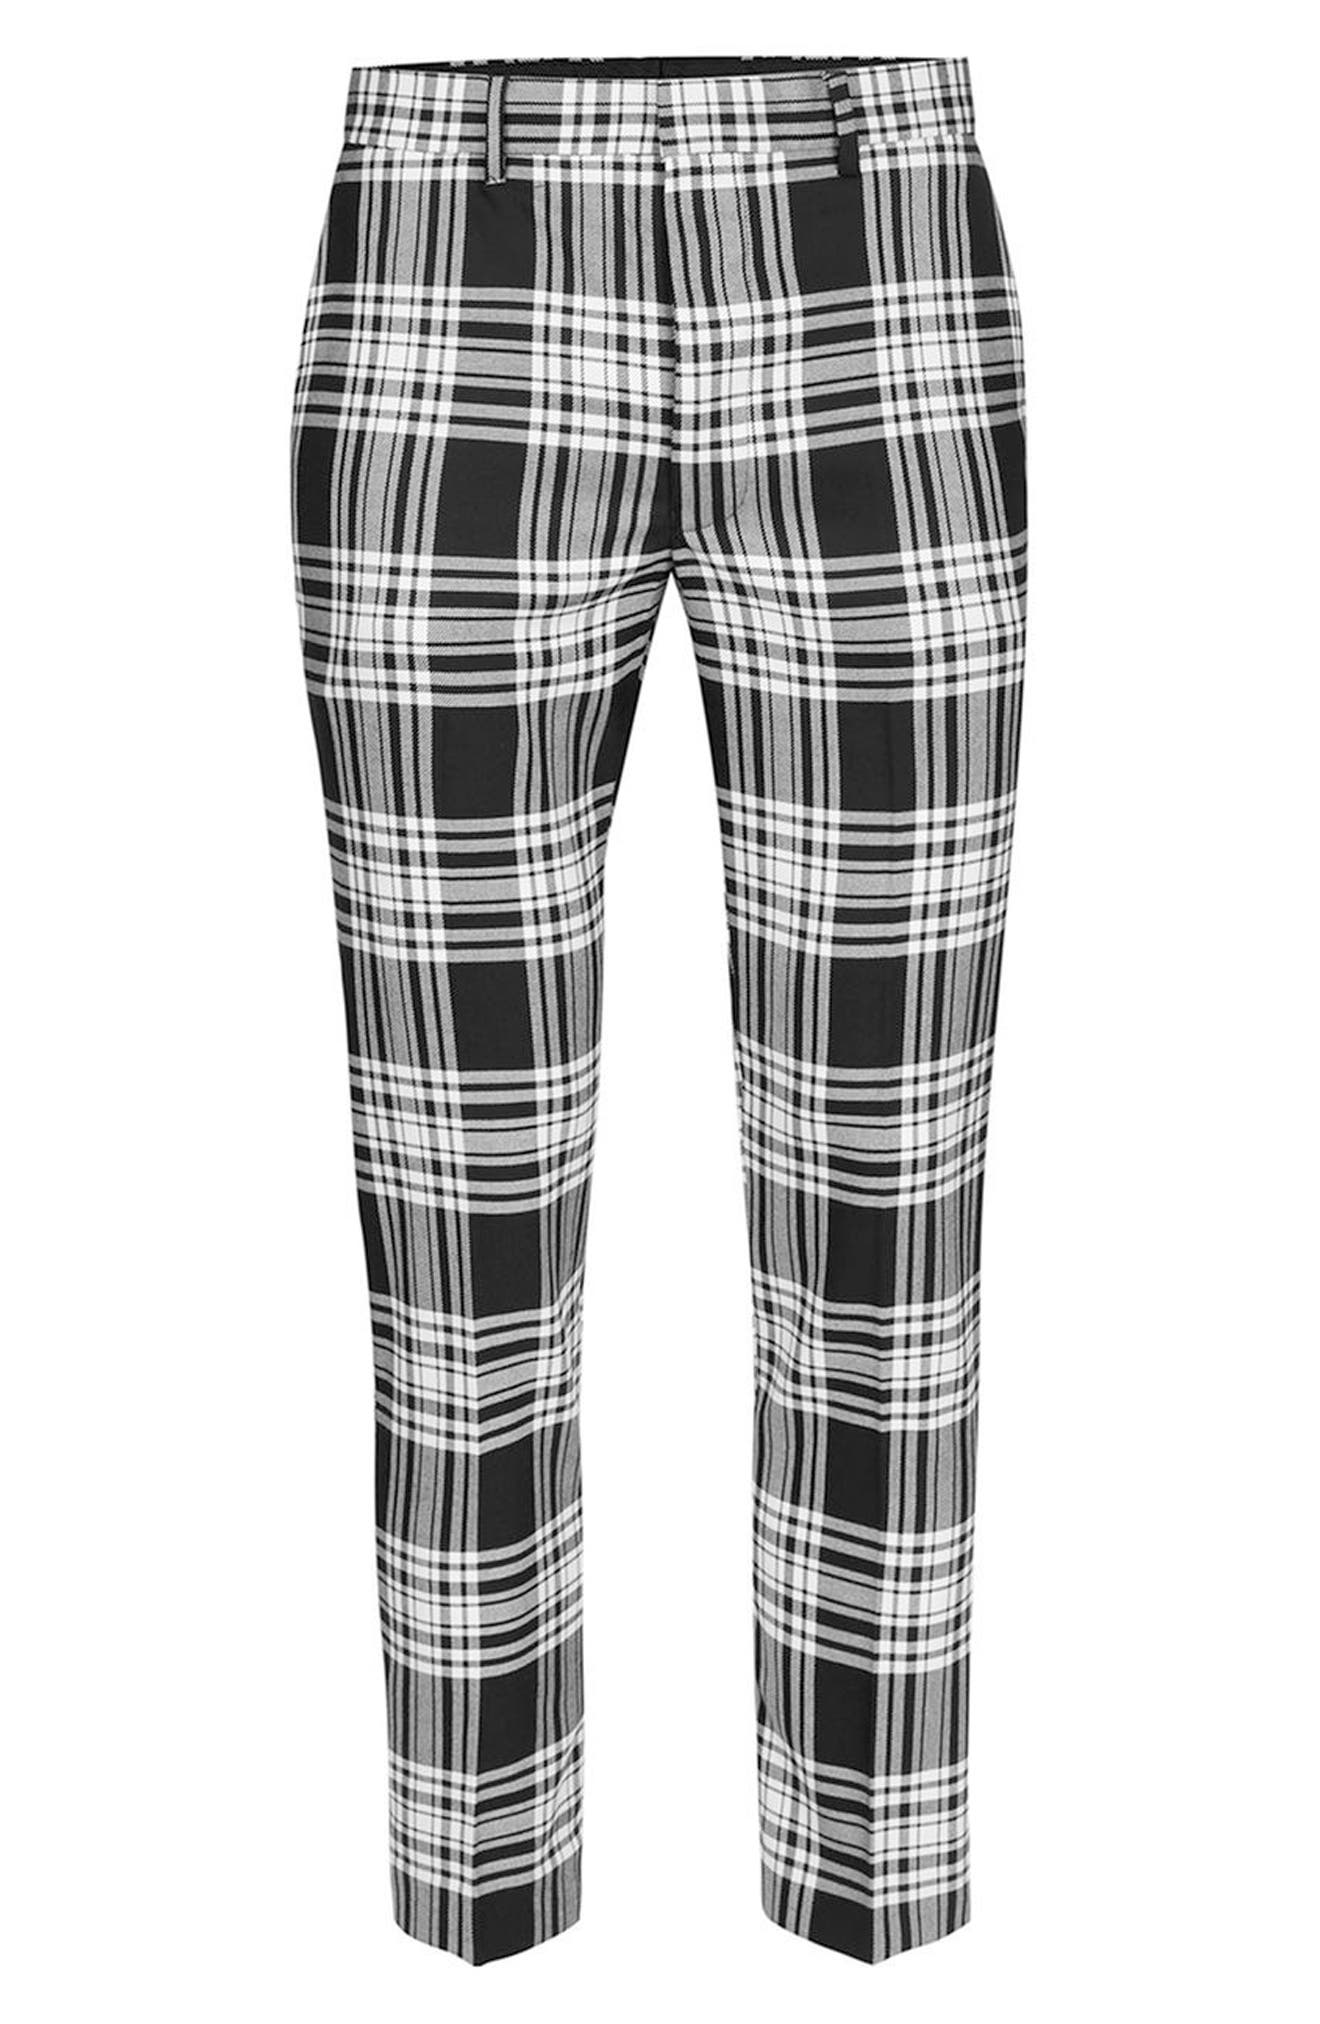 Plaid Ultra Skinny Fit Crop Trousers,                             Alternate thumbnail 4, color,                             001